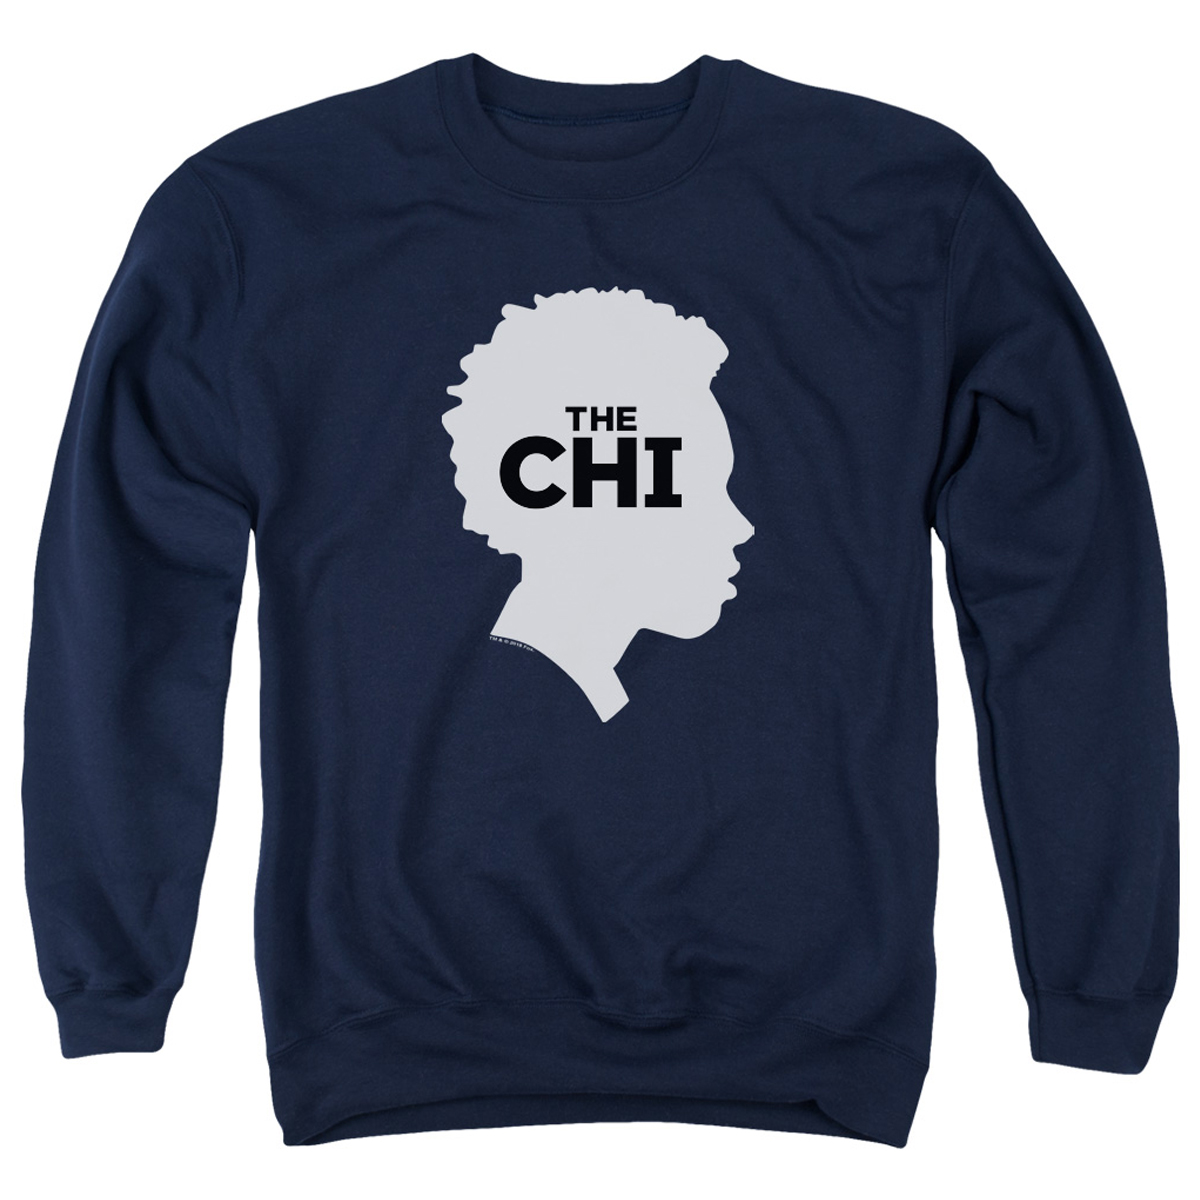 The Chi Silhouette Crewneck Sweatshirt